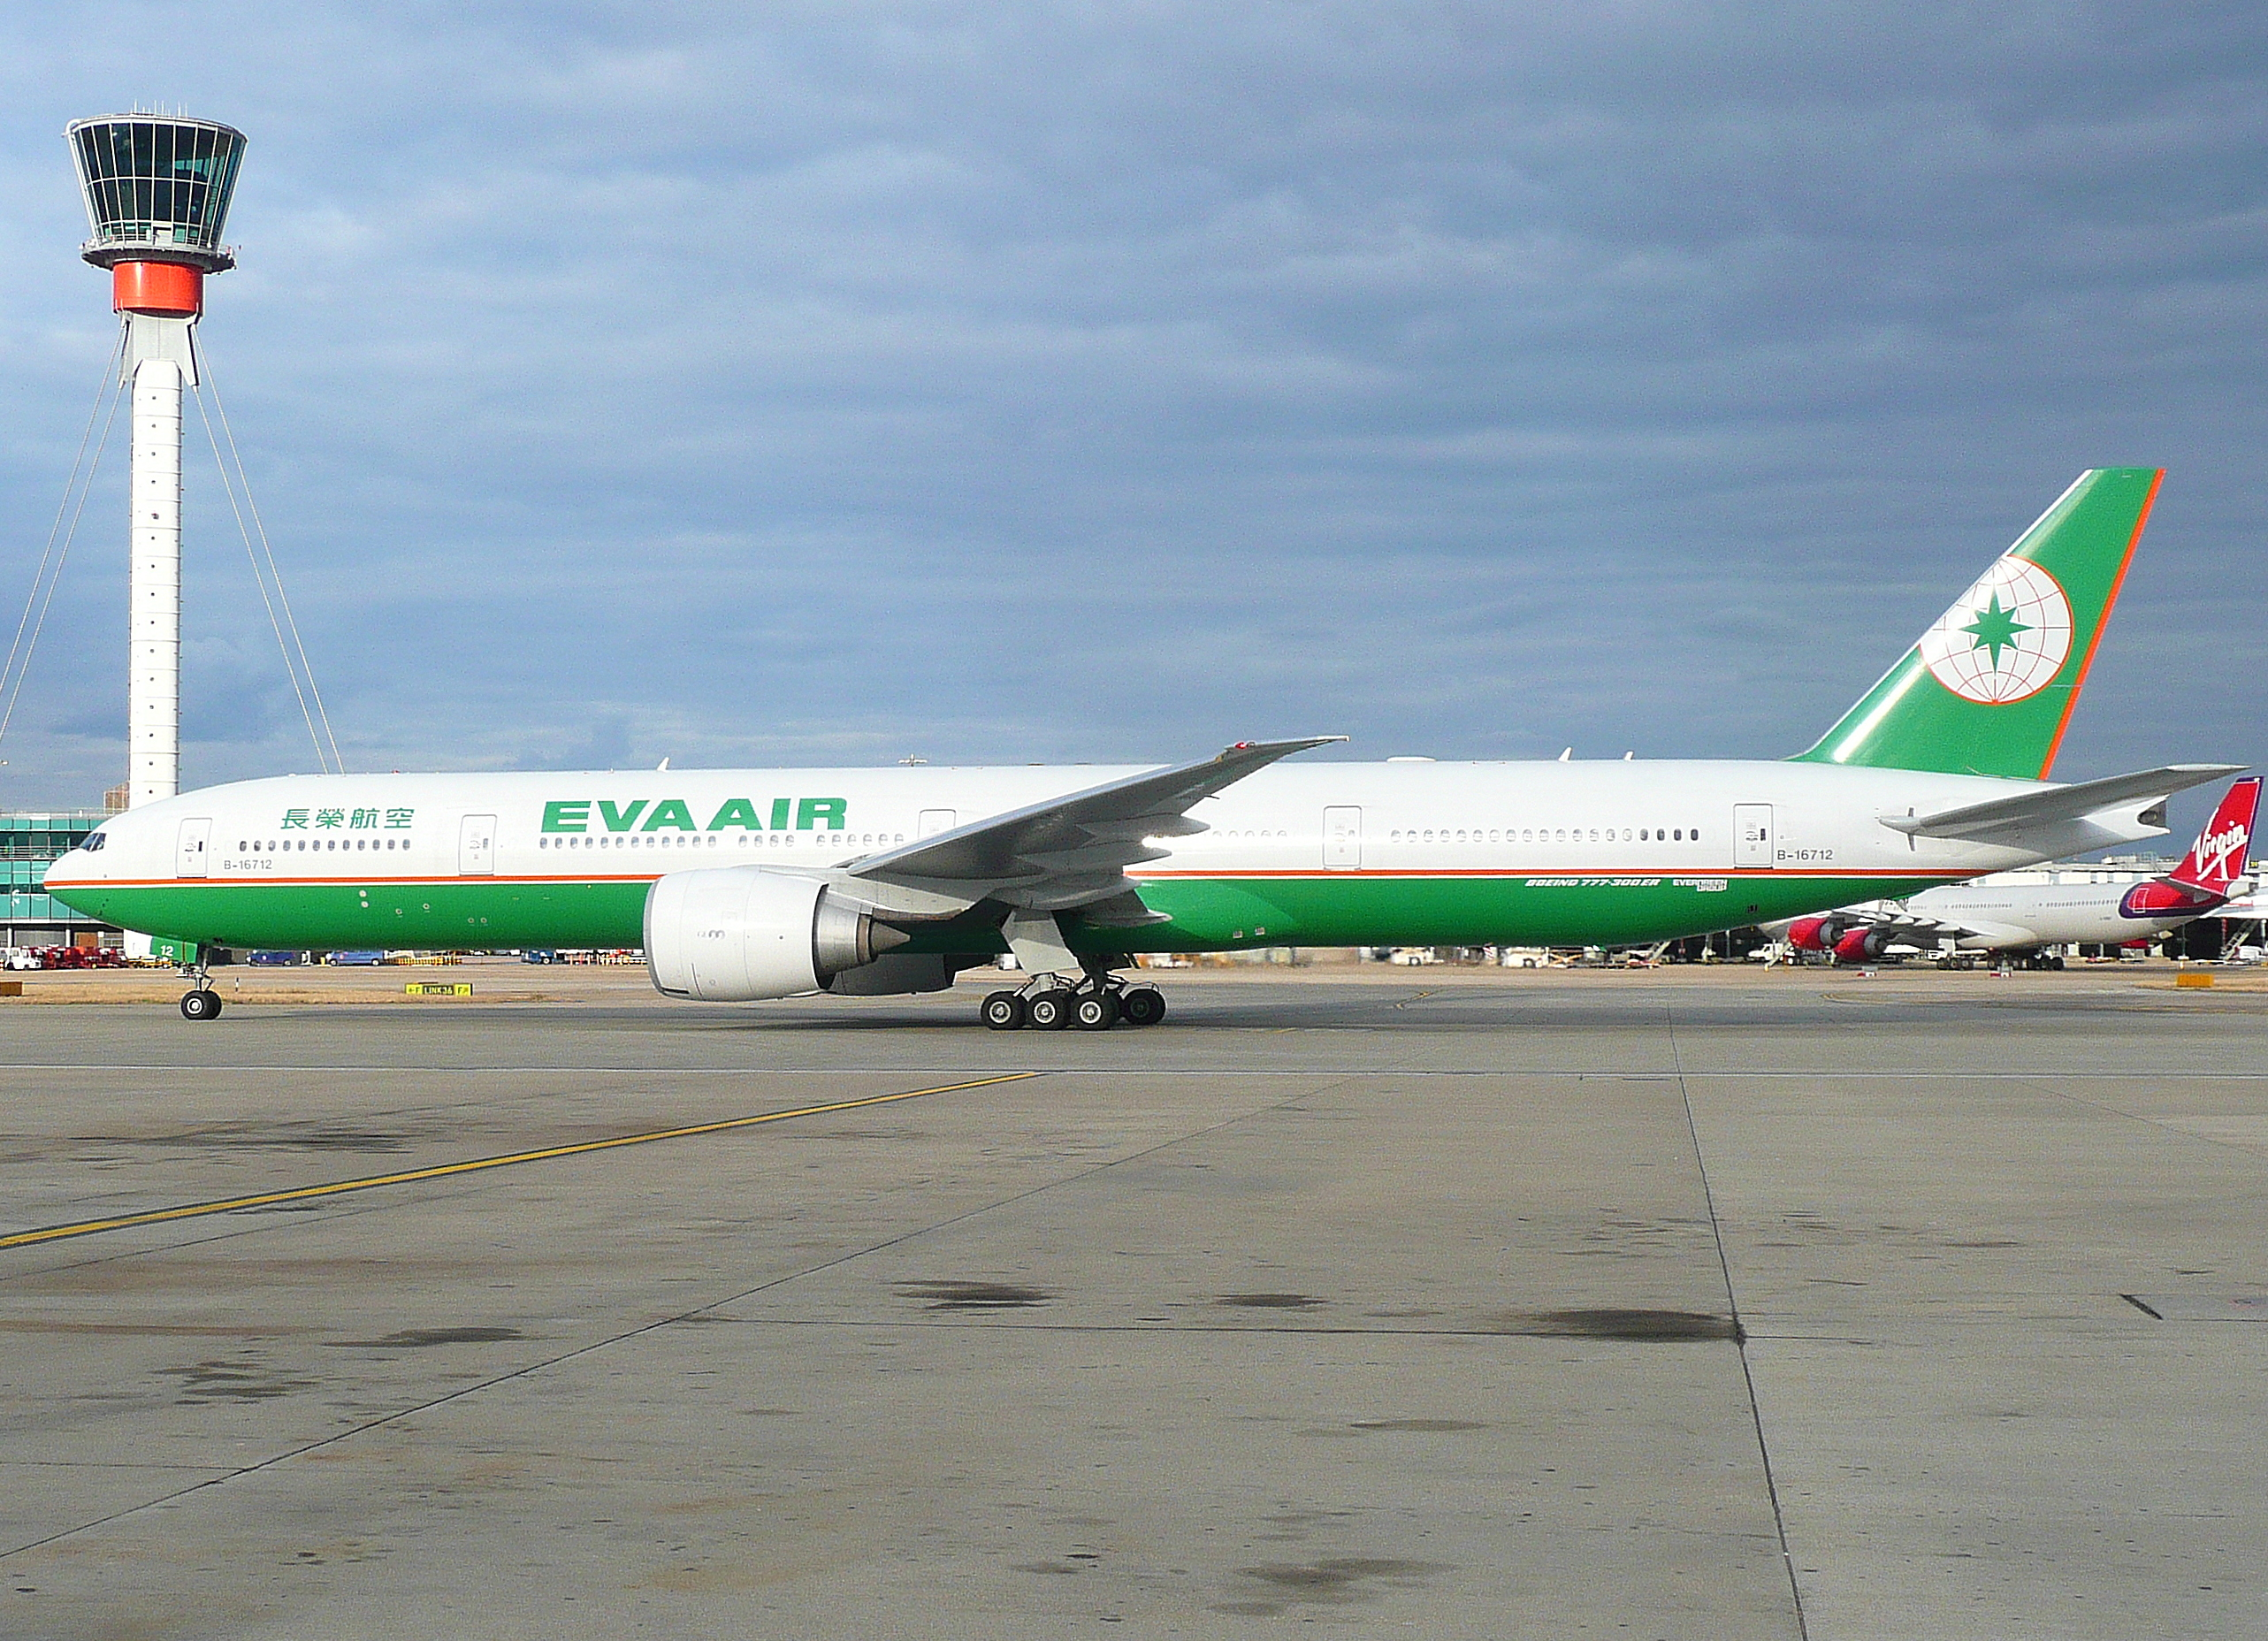 File:B-16712 B773 Eva Air passing the control tower (4867843393).